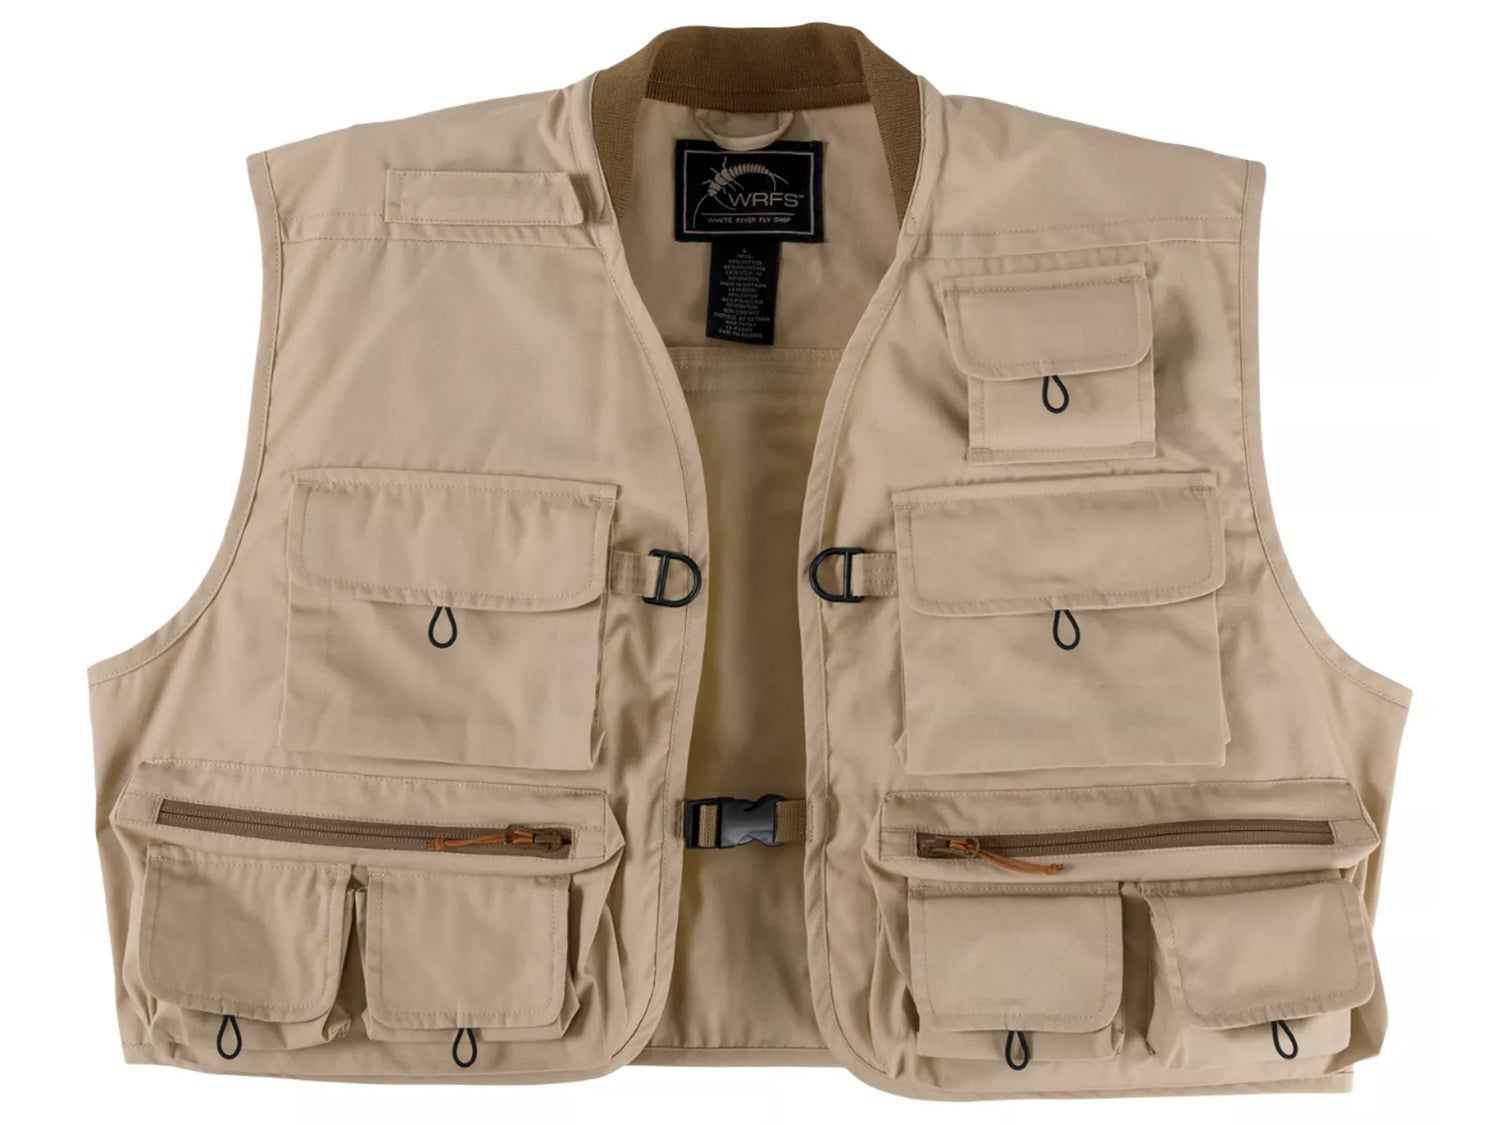 White River Fly Shop Aventur1 Fly Fishing Vest for Kids